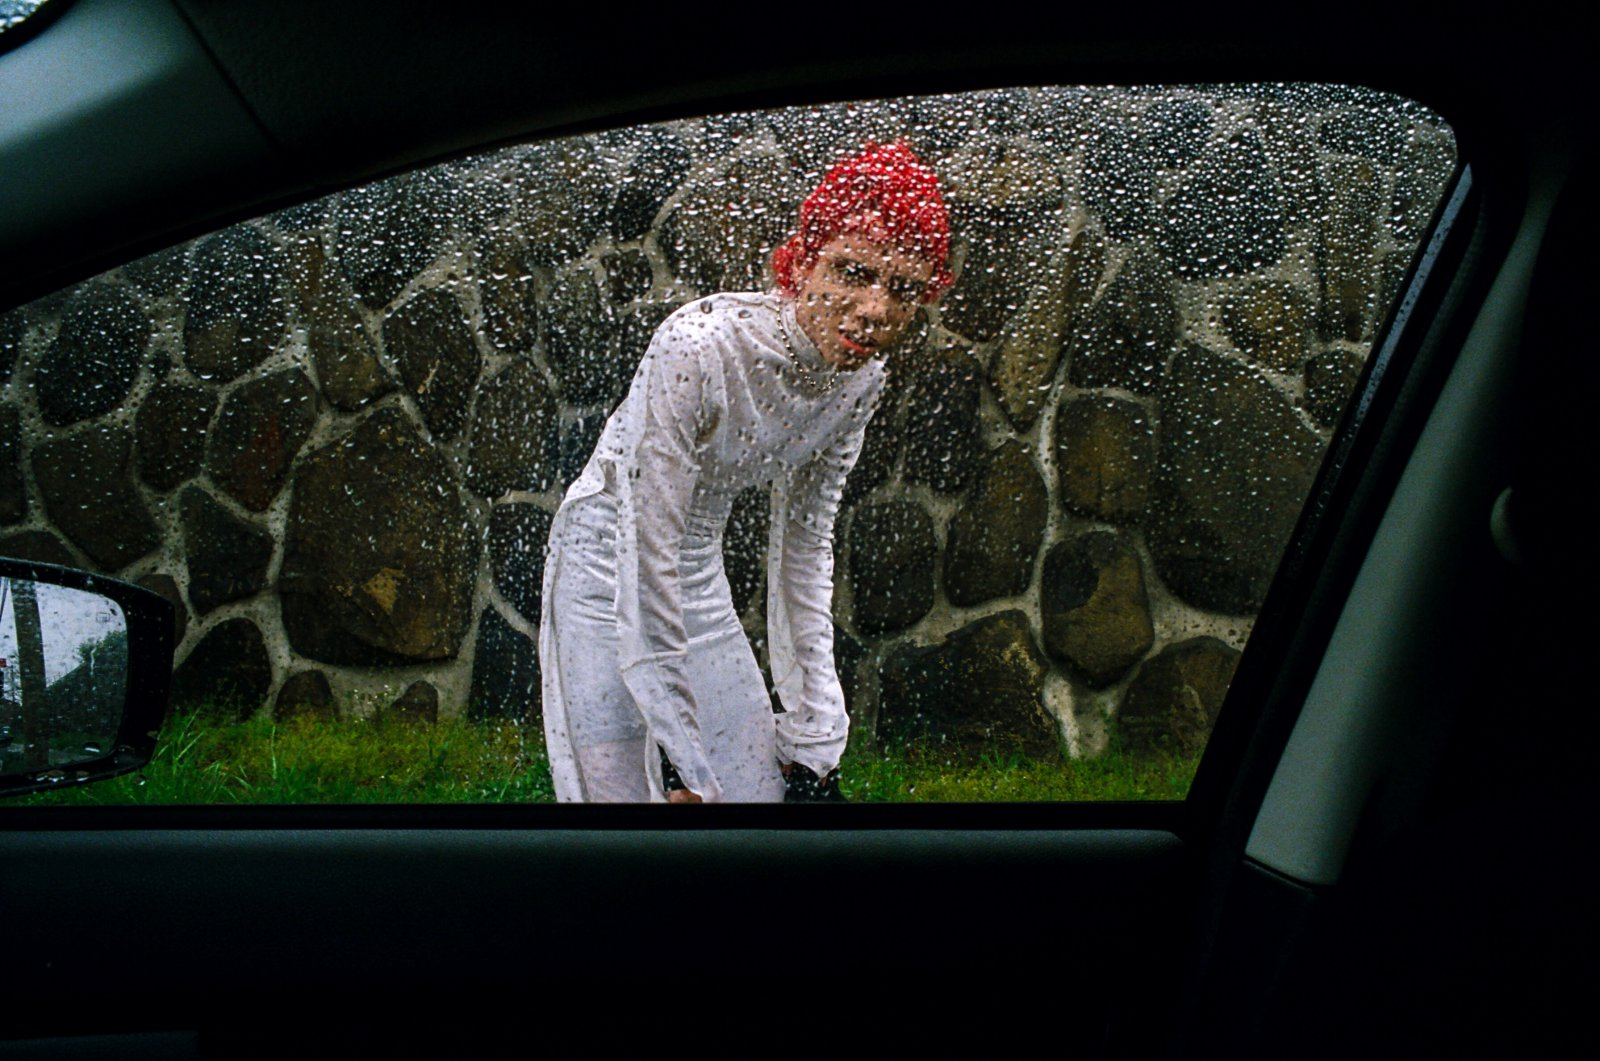 A boy peers through a car window directly at the viewer